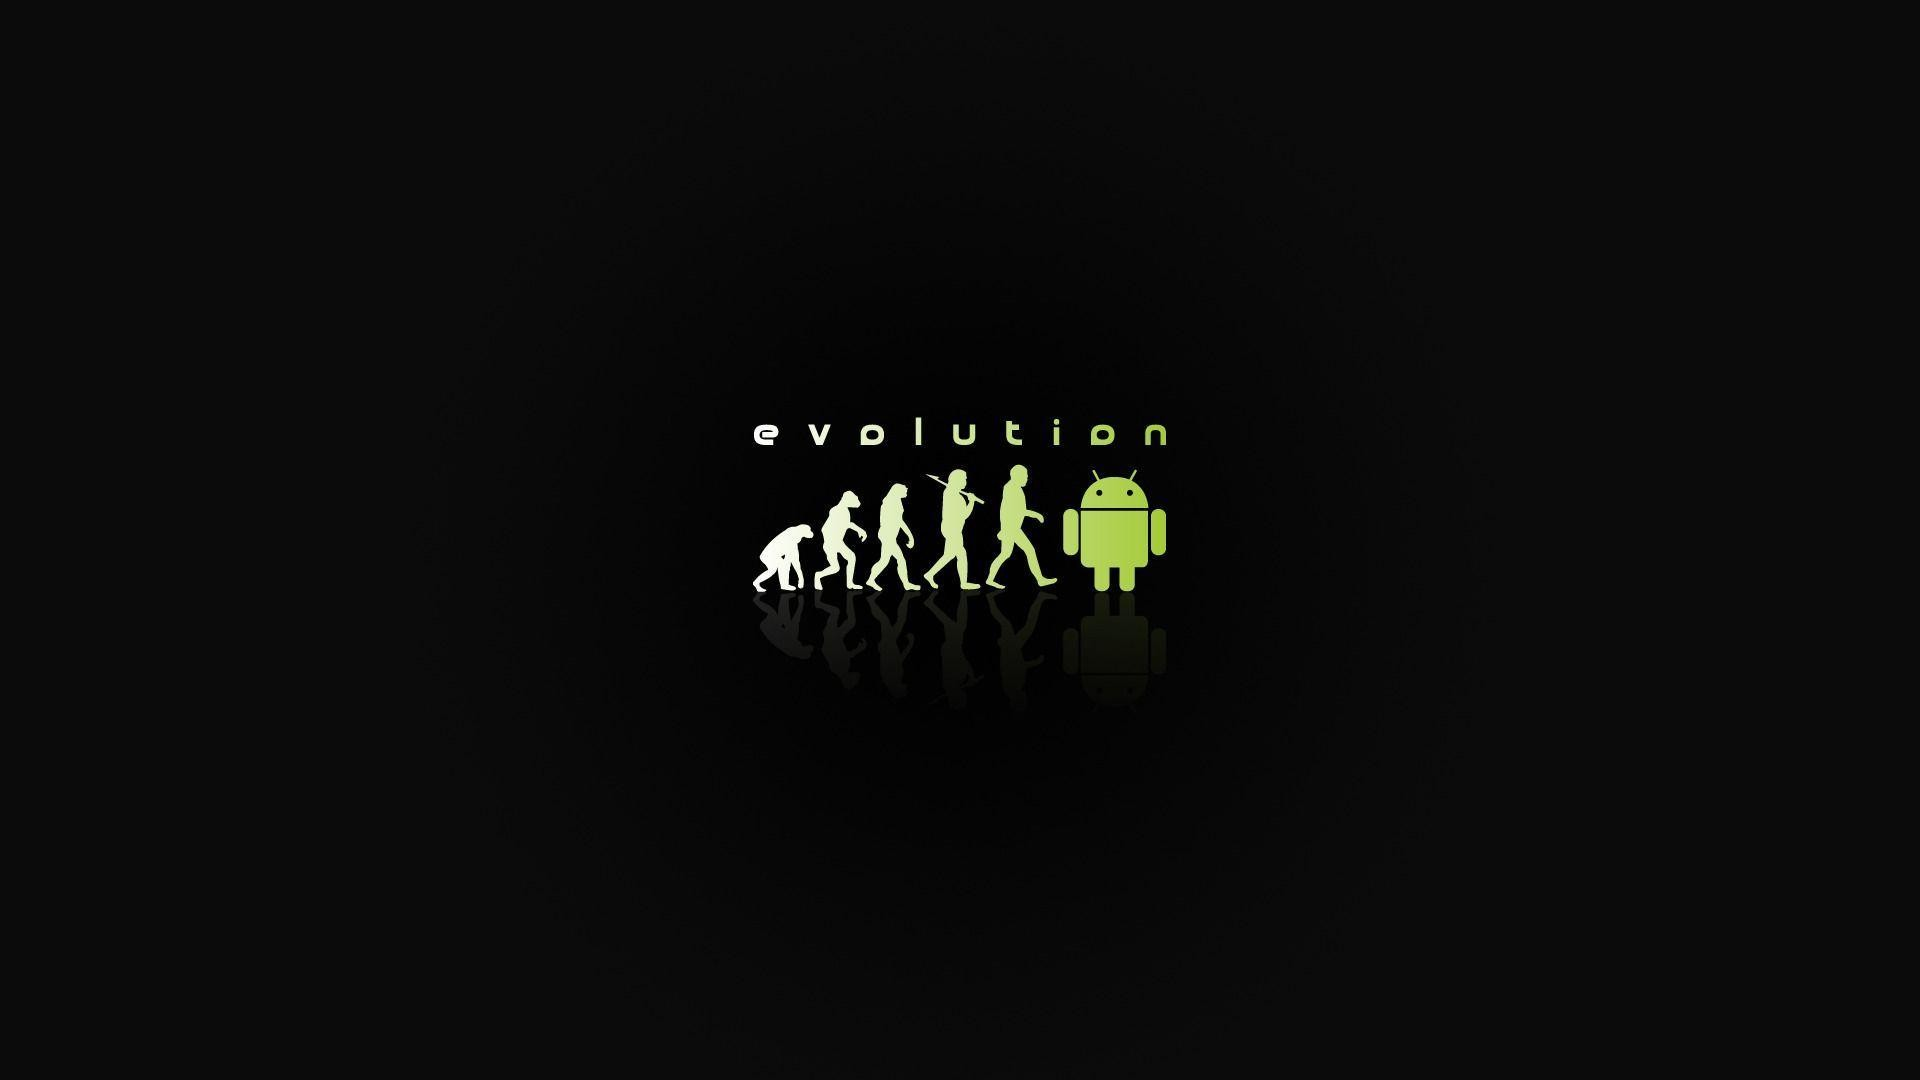 Android Wallpaper Cool Background Android Evolution Wallpaper